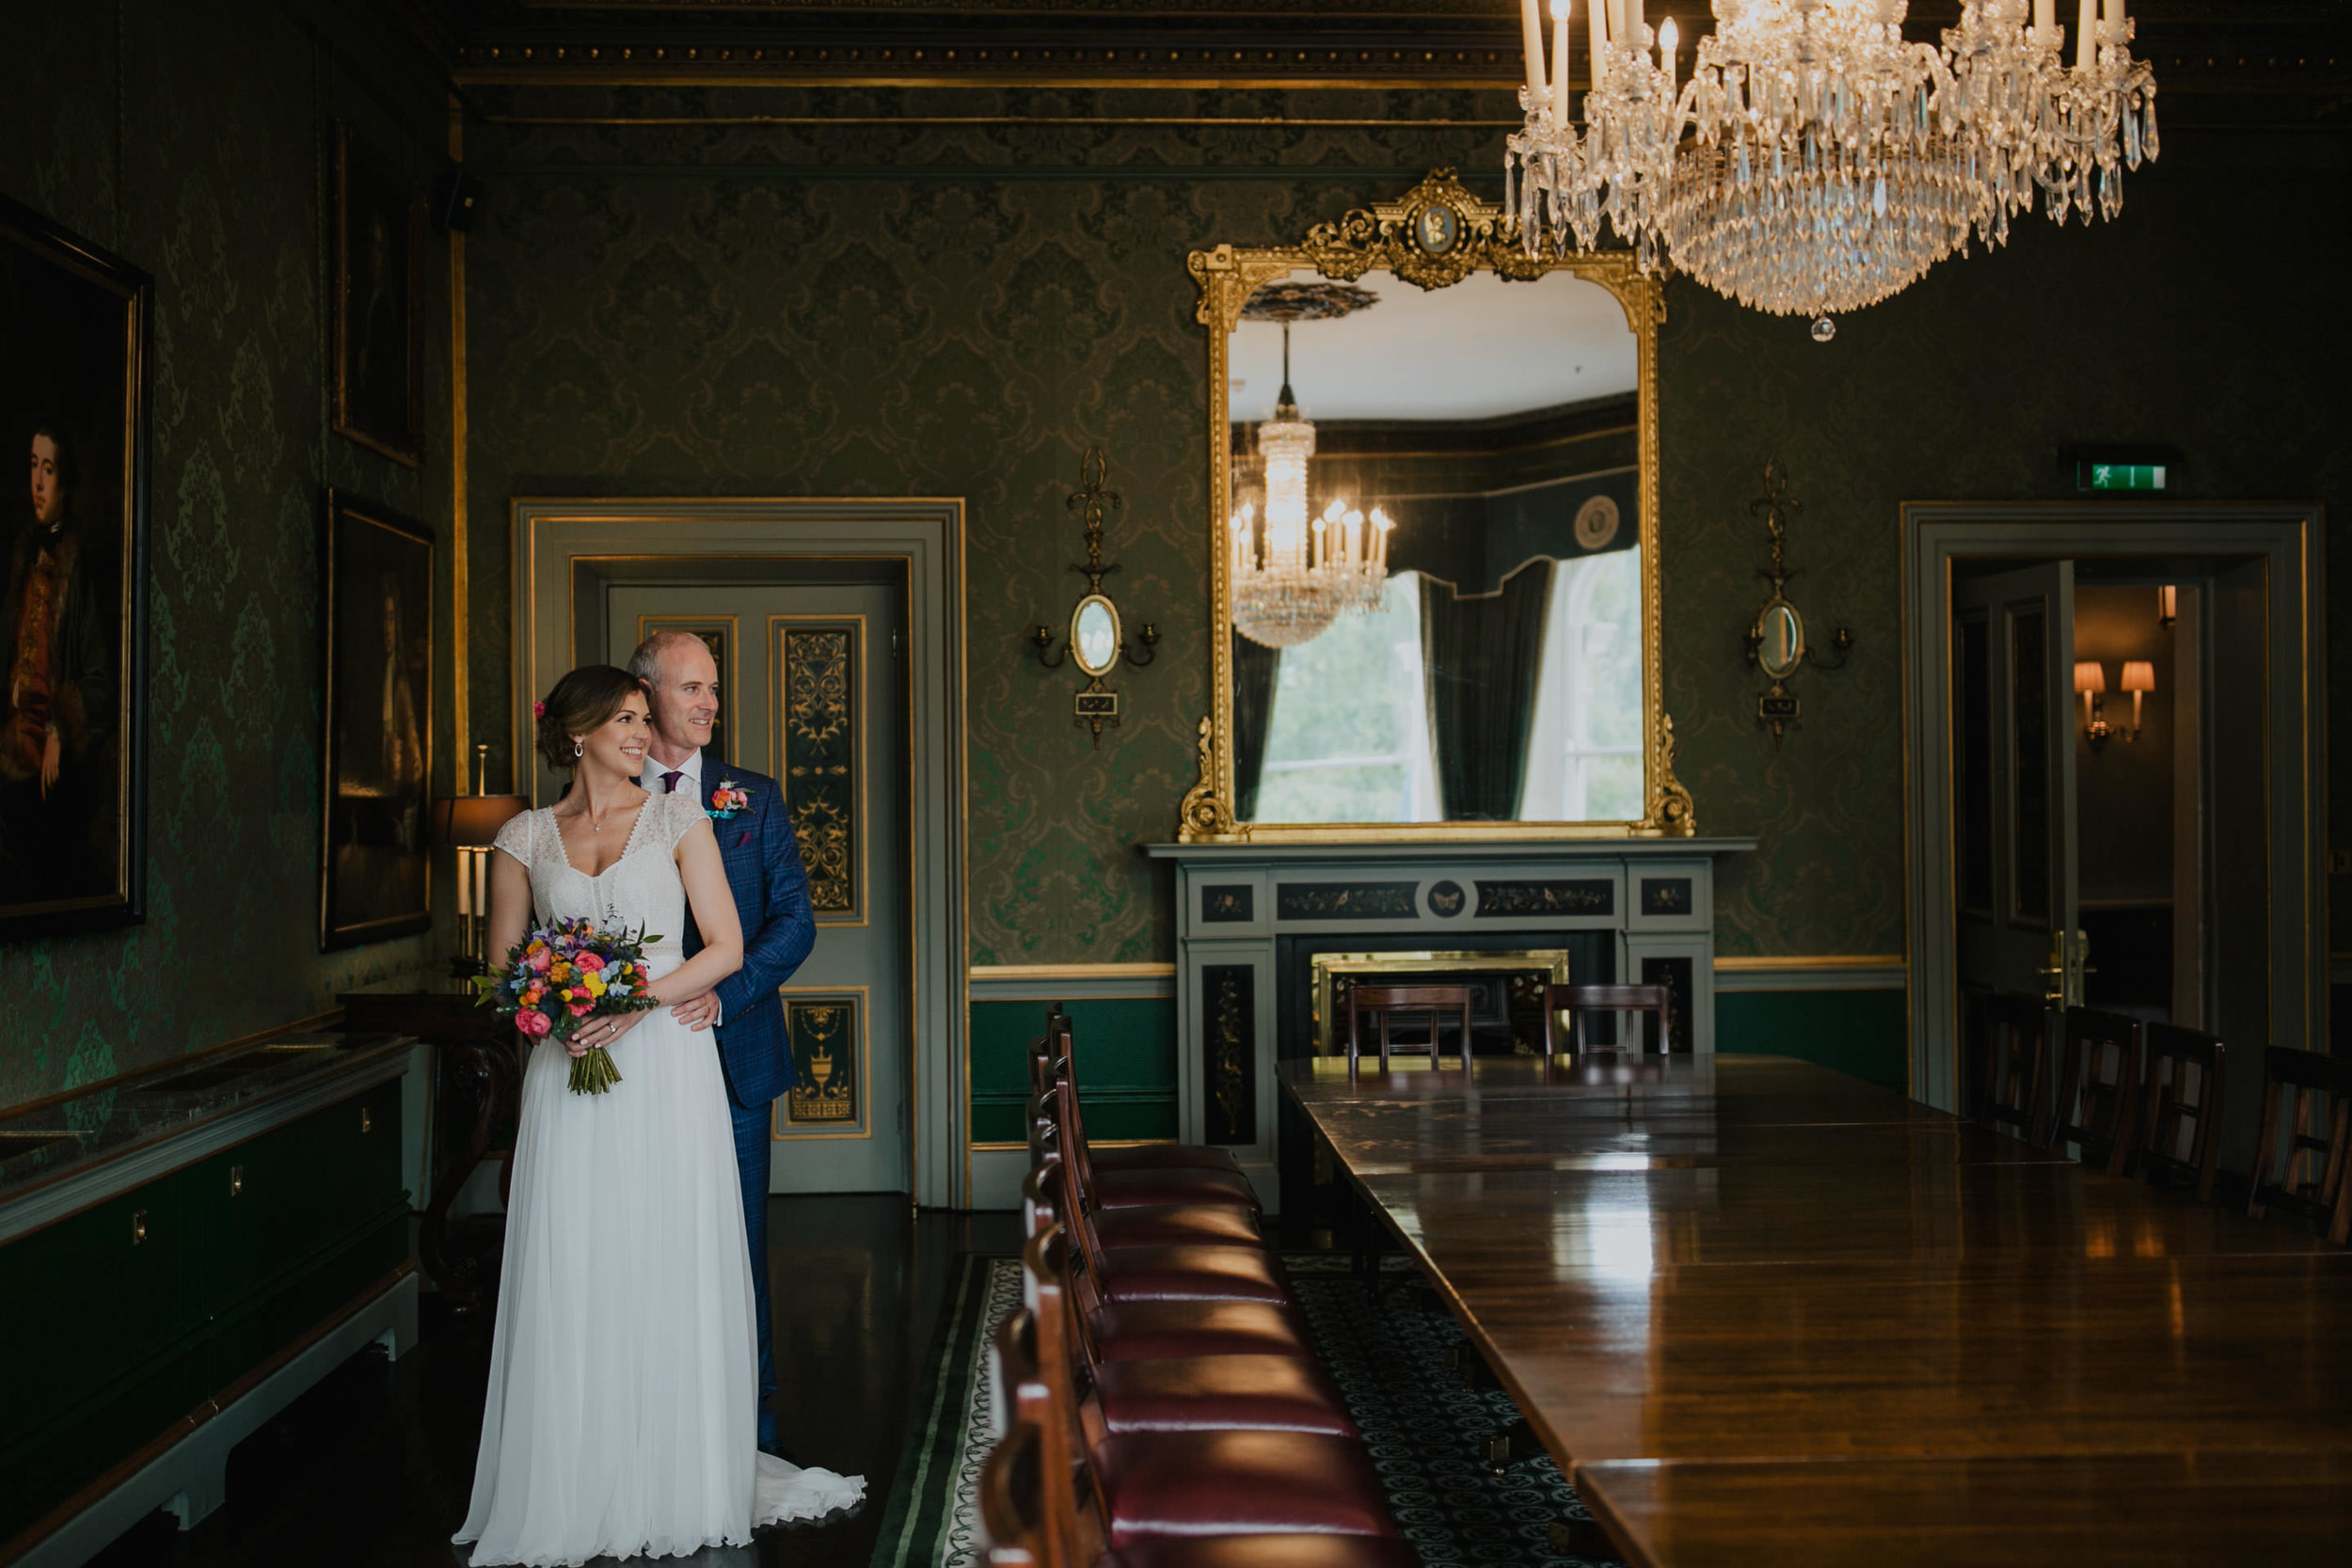 s&r_the_shelbourne_hotel_wedding_photographer_livia_figueiredo_15.jpg